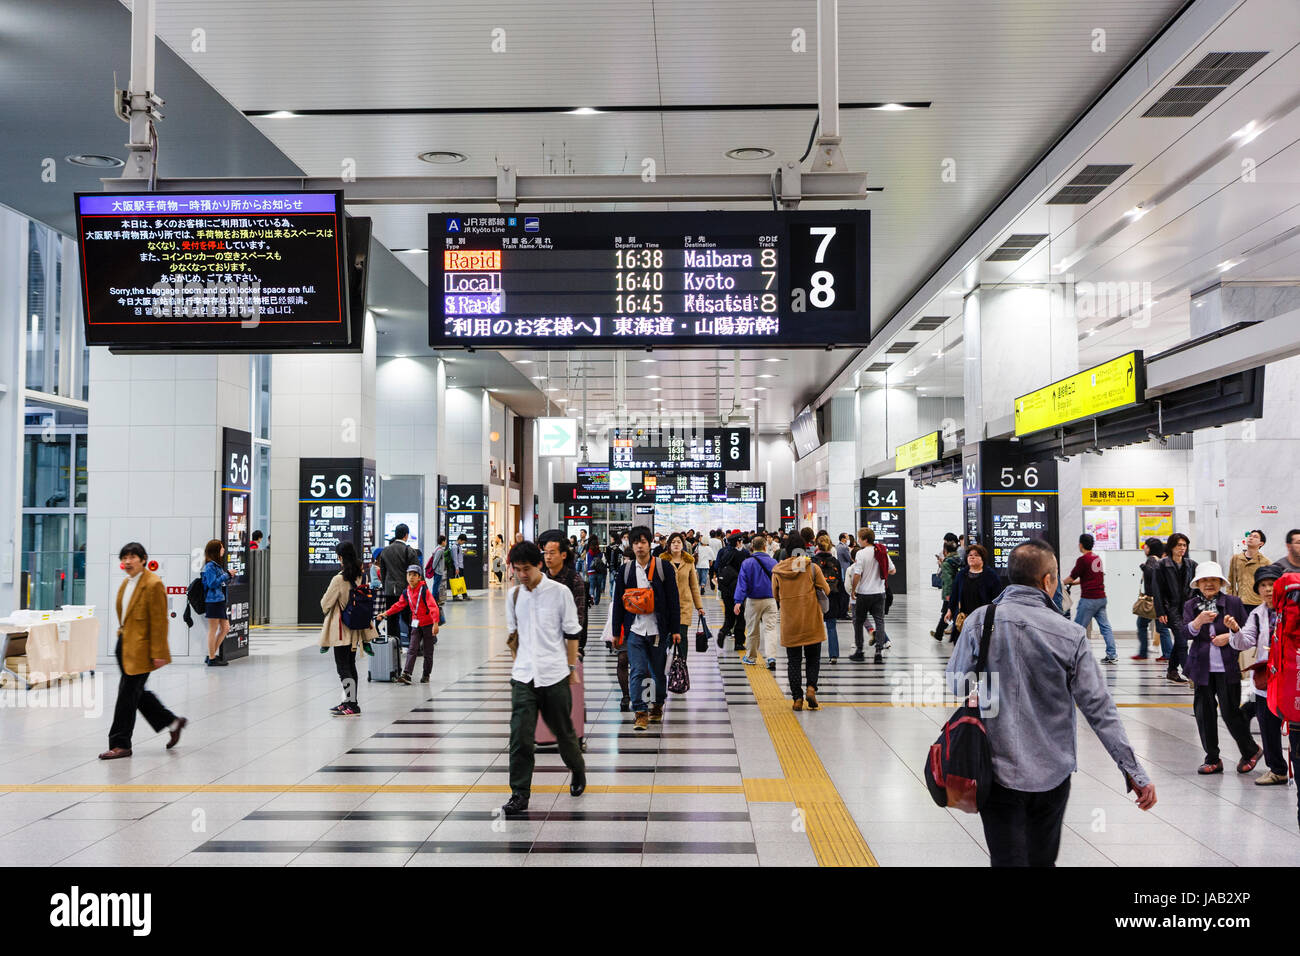 Osaka station, interior. Upper concourse with busy with people and commuters walking beneath overhead sign for trains - Stock Image